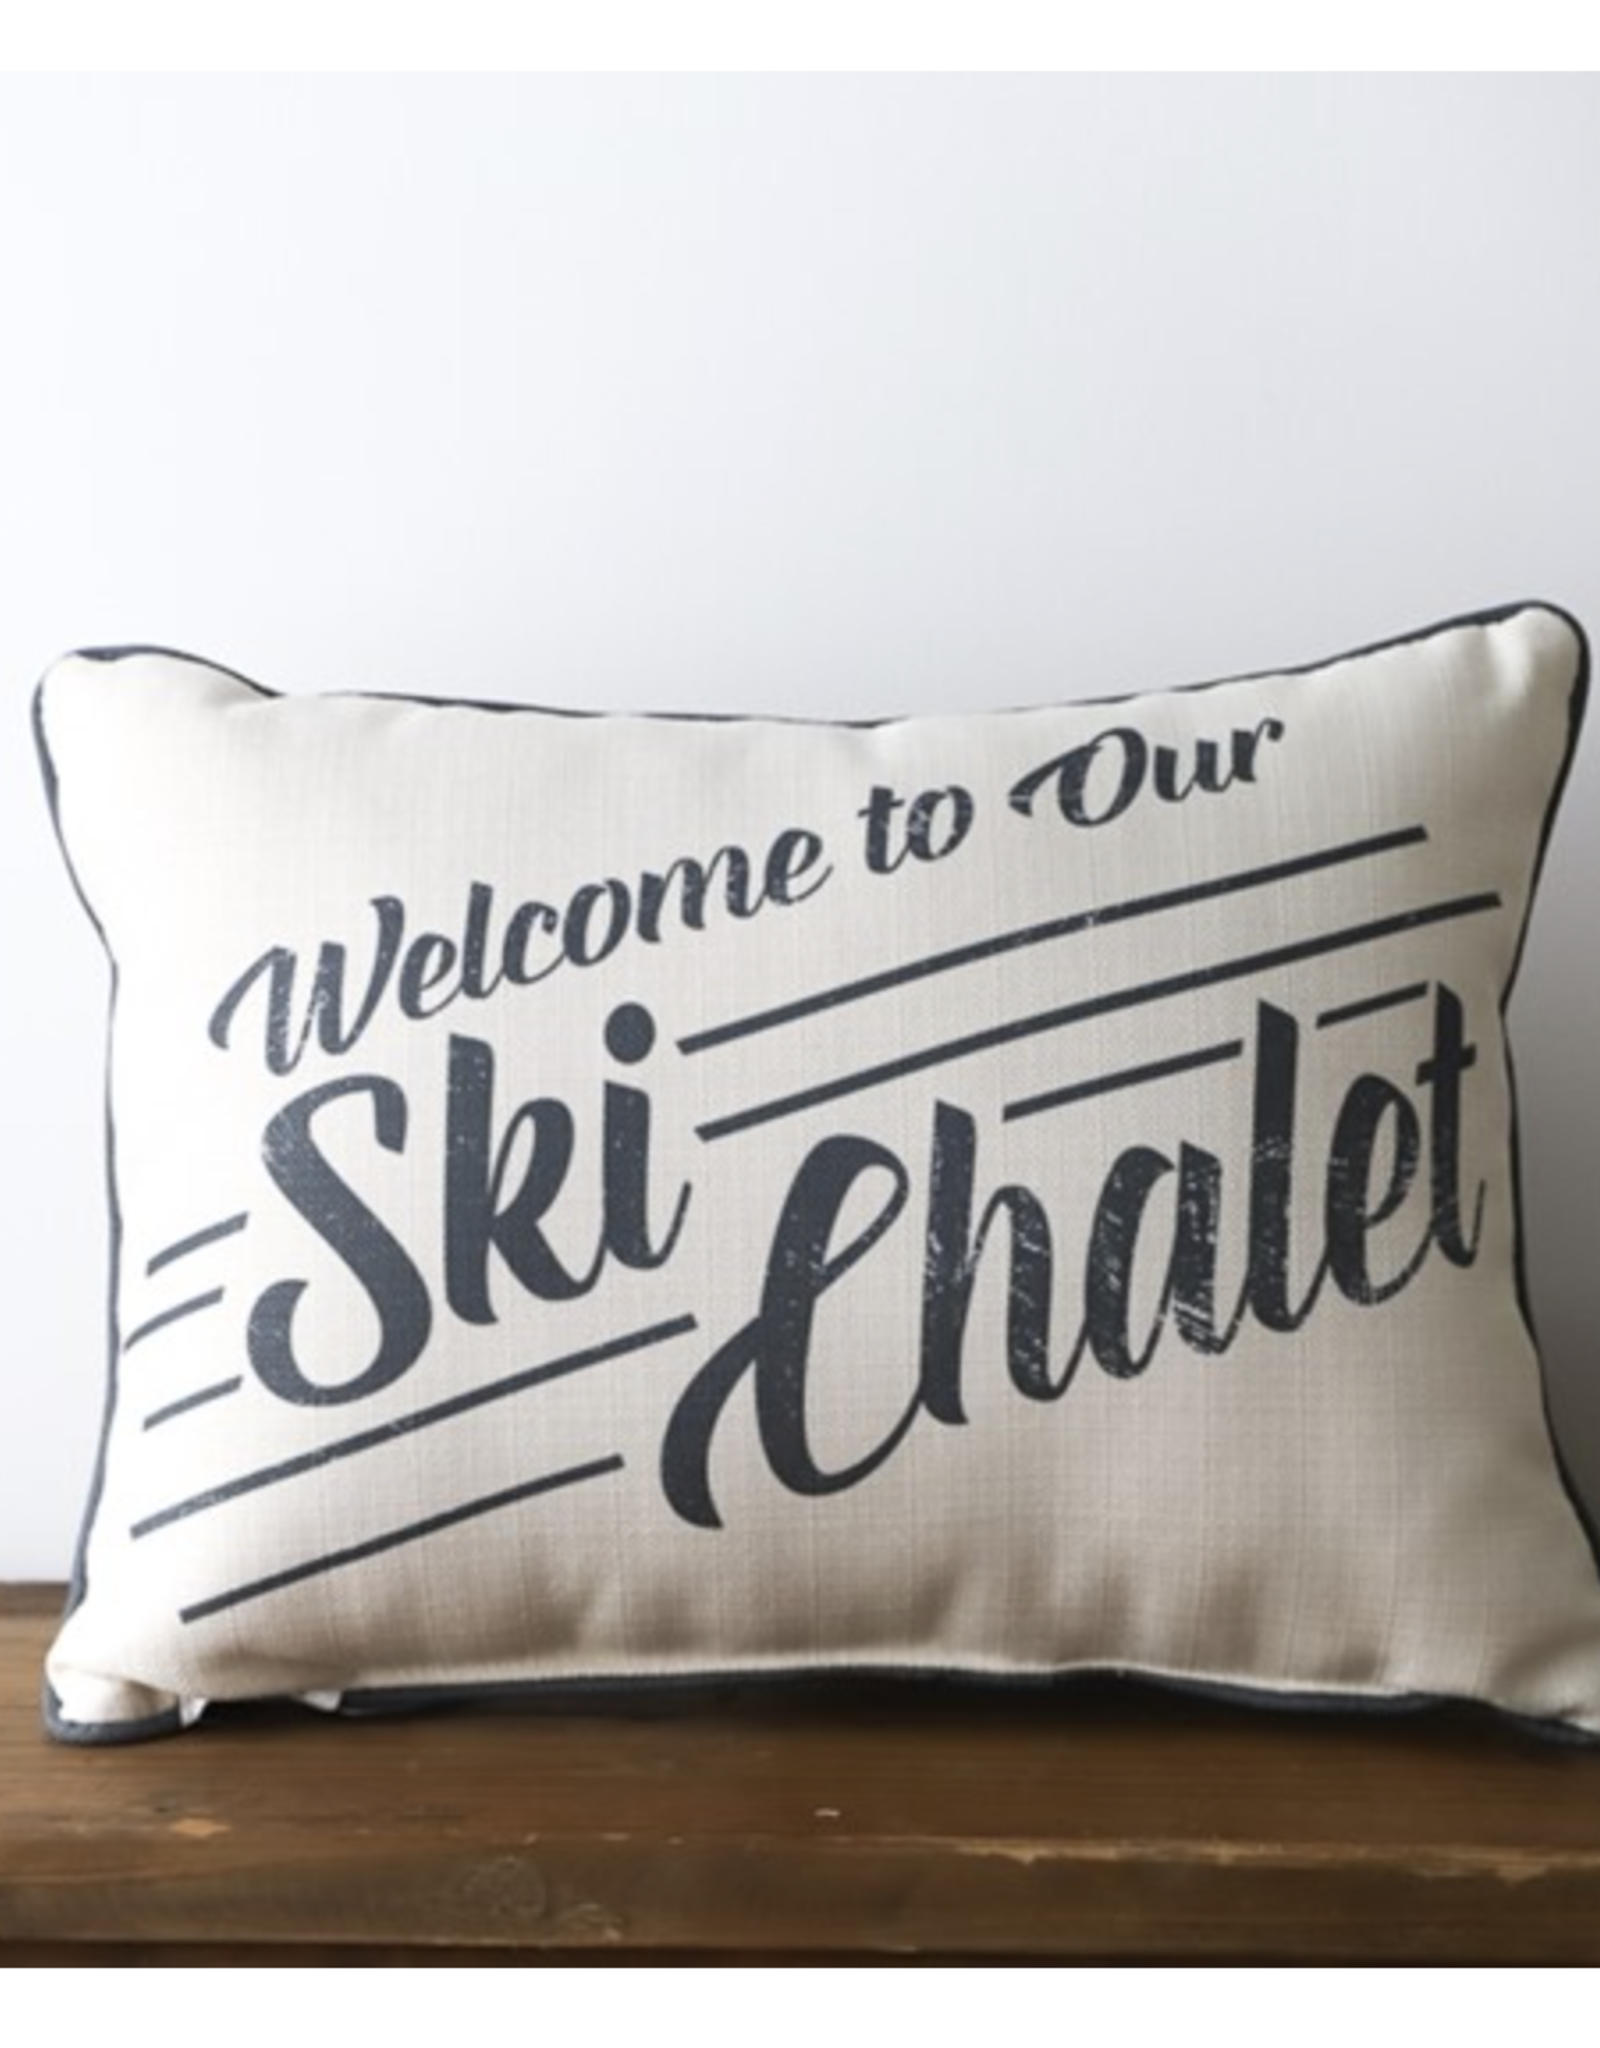 Welcome to our ski chalet pillow